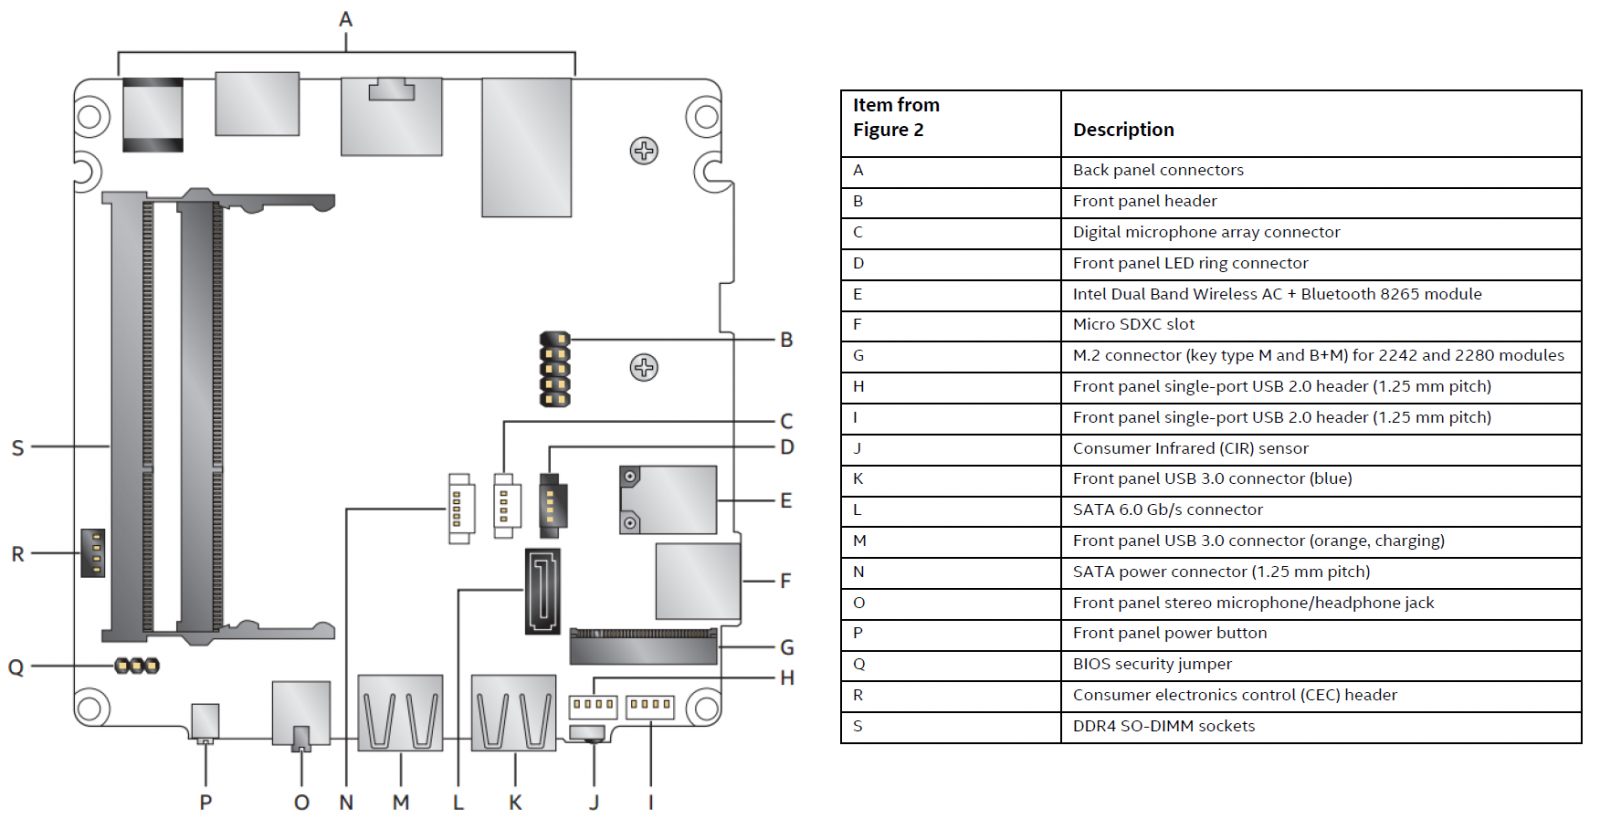 Intnuc 10019 Product Specification And Manual Intel Next Unit Of Usb To Sata Wiring Diagram Attached This Article You Will Also Find An Assembly Guide Information